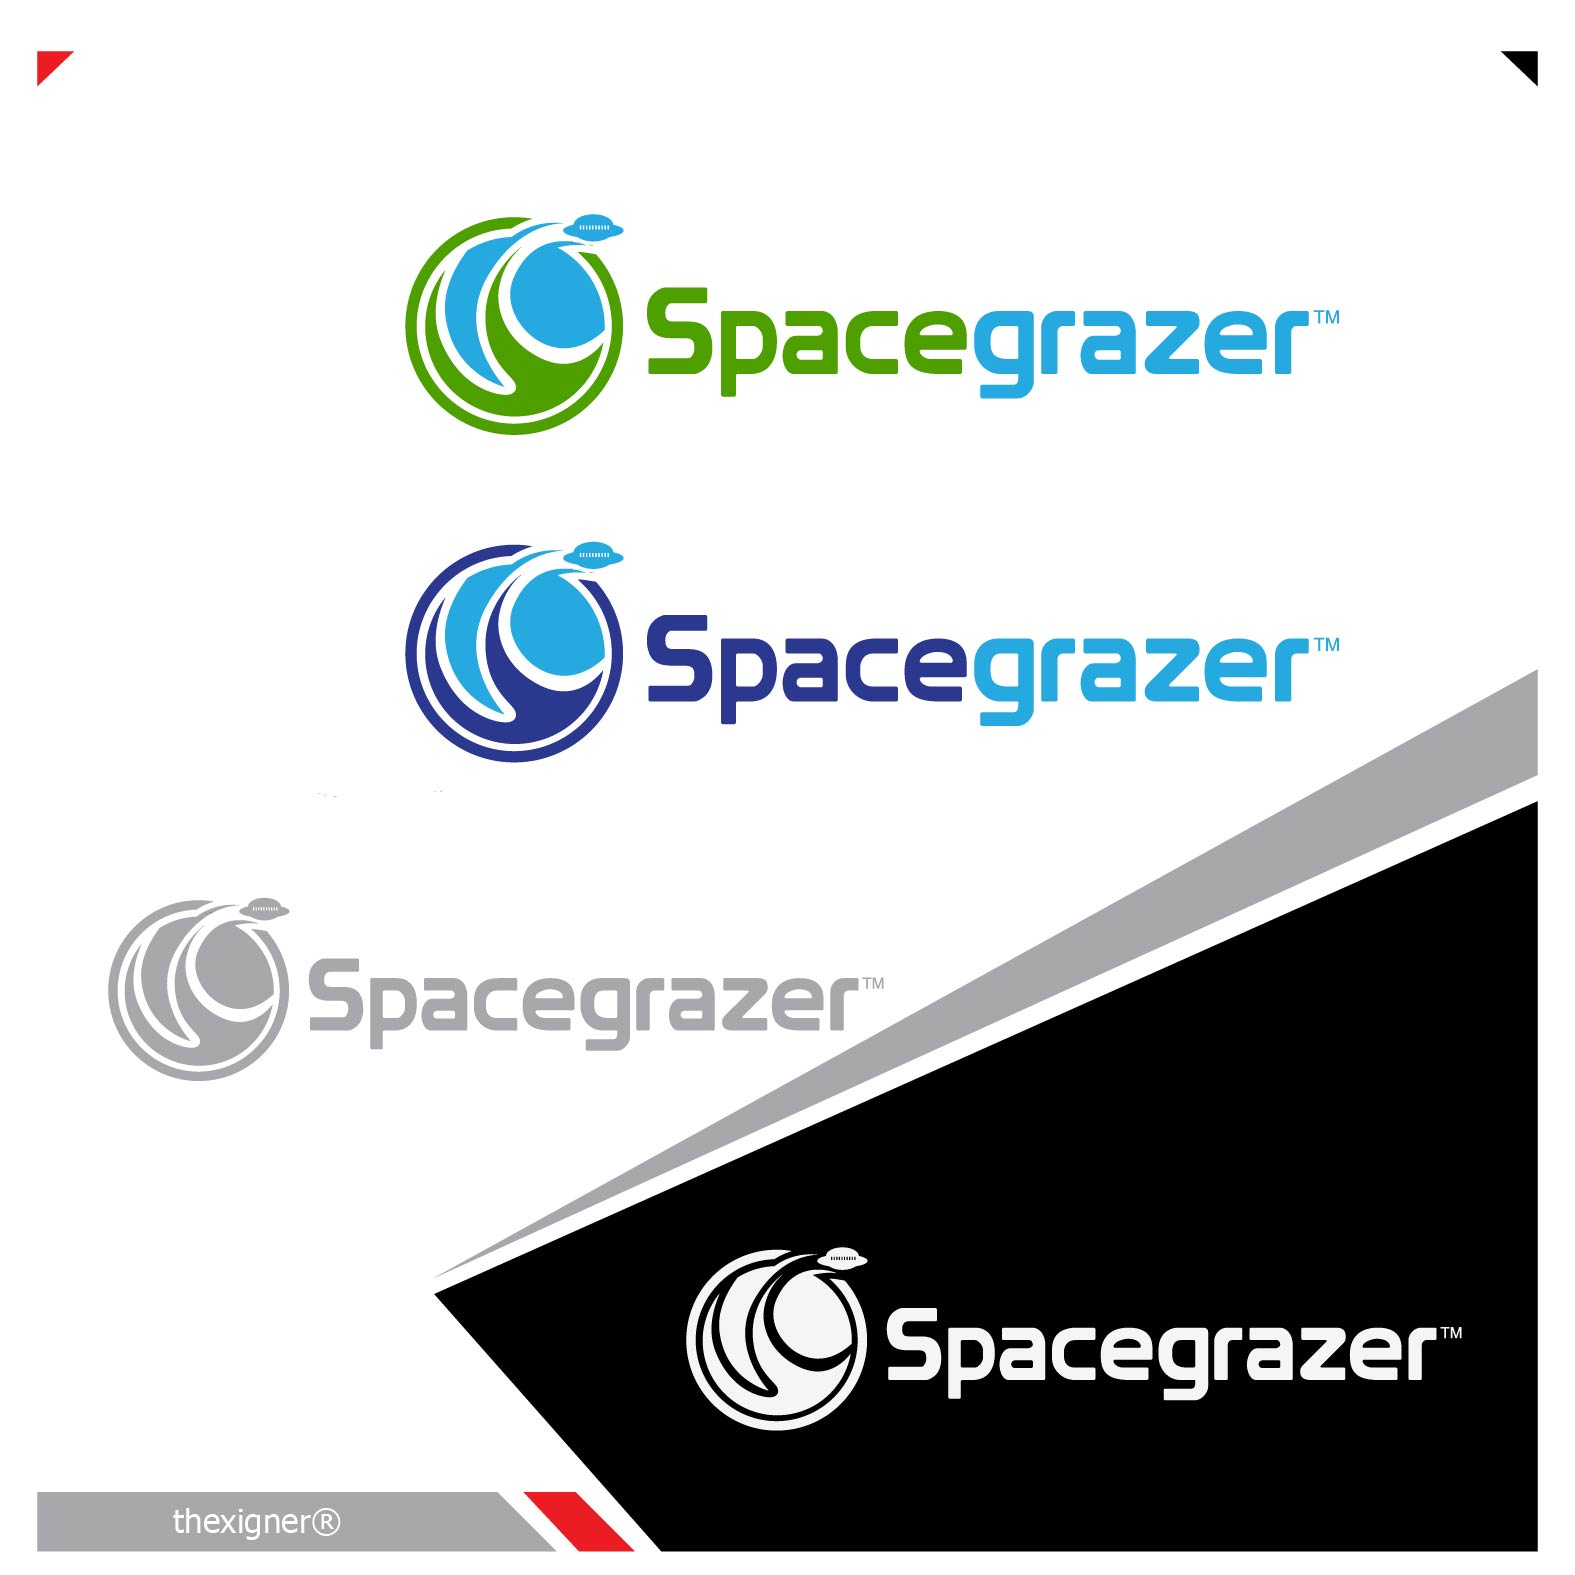 Logo Design by lagalag - Entry No. 158 in the Logo Design Contest Fun Logo Design for Spacegrazer.